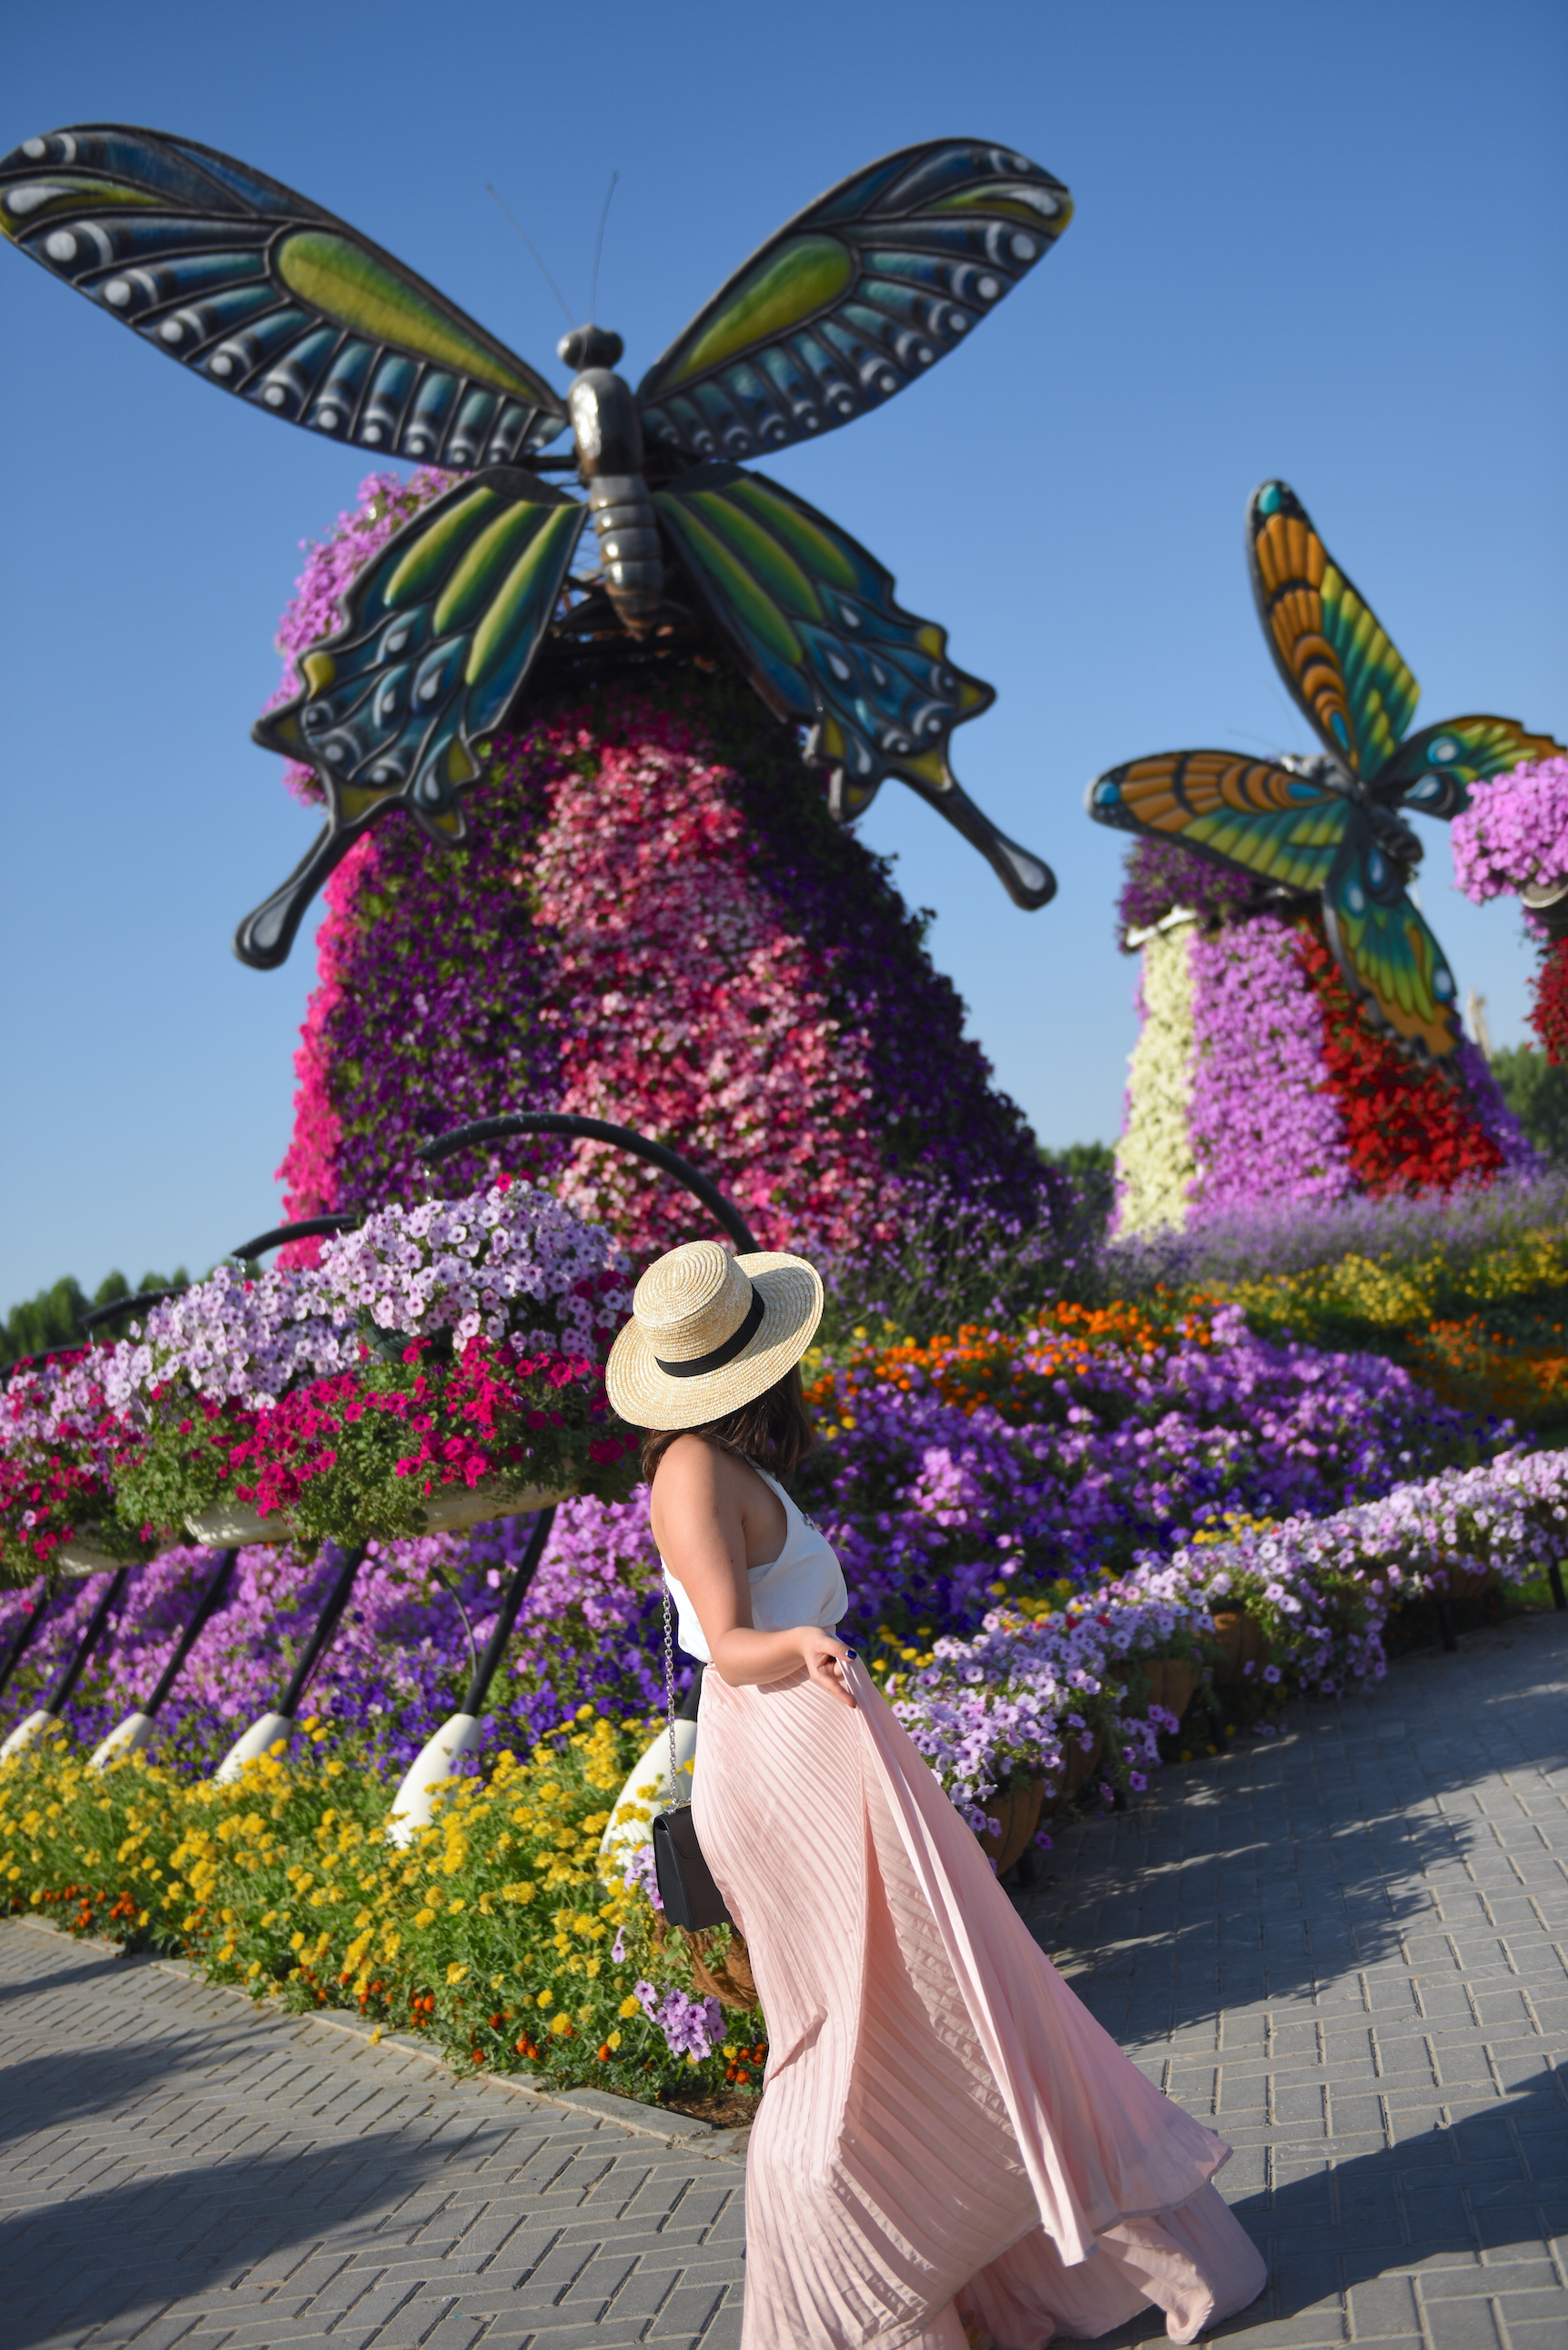 dubai-miracle-garden-photo